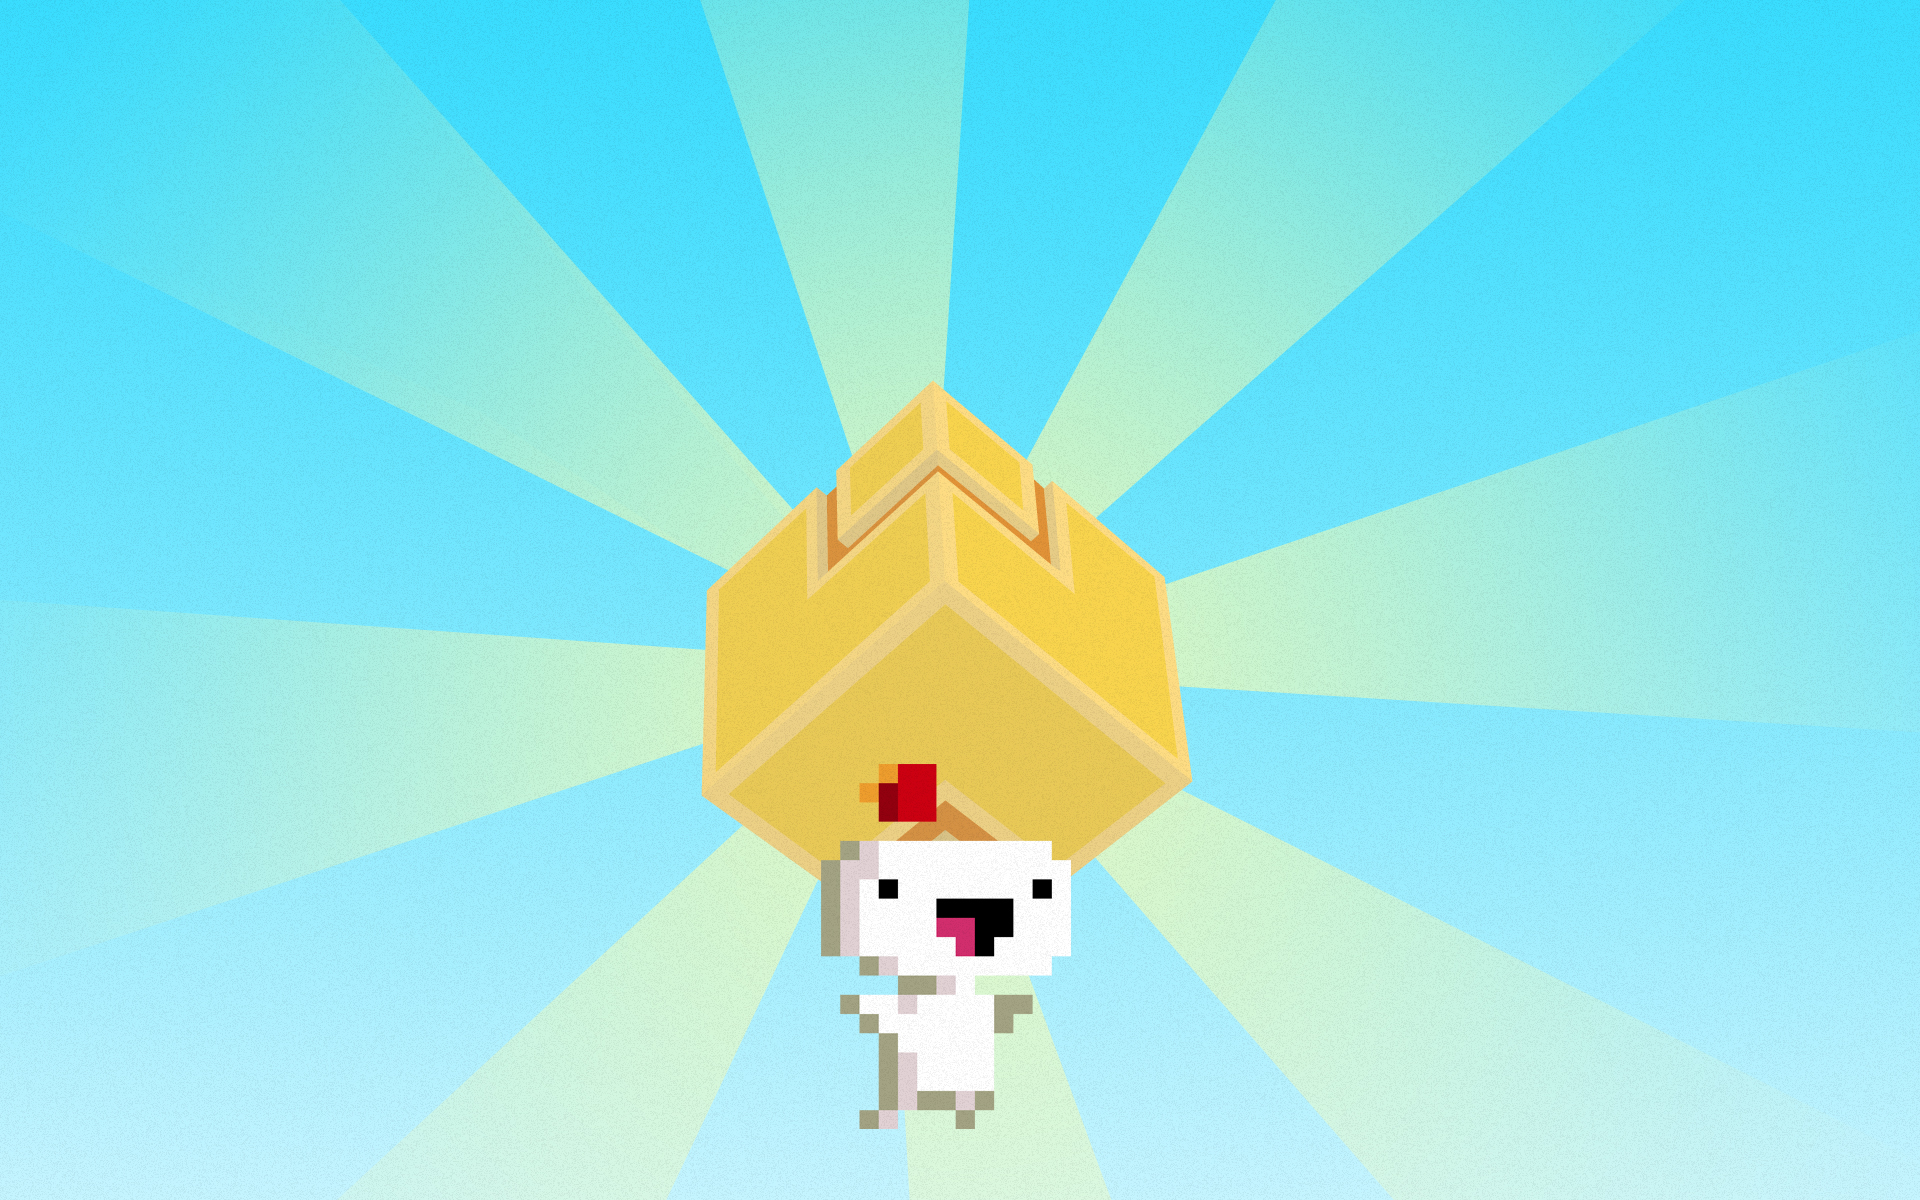 Awesome Fez Wallpaper 35531